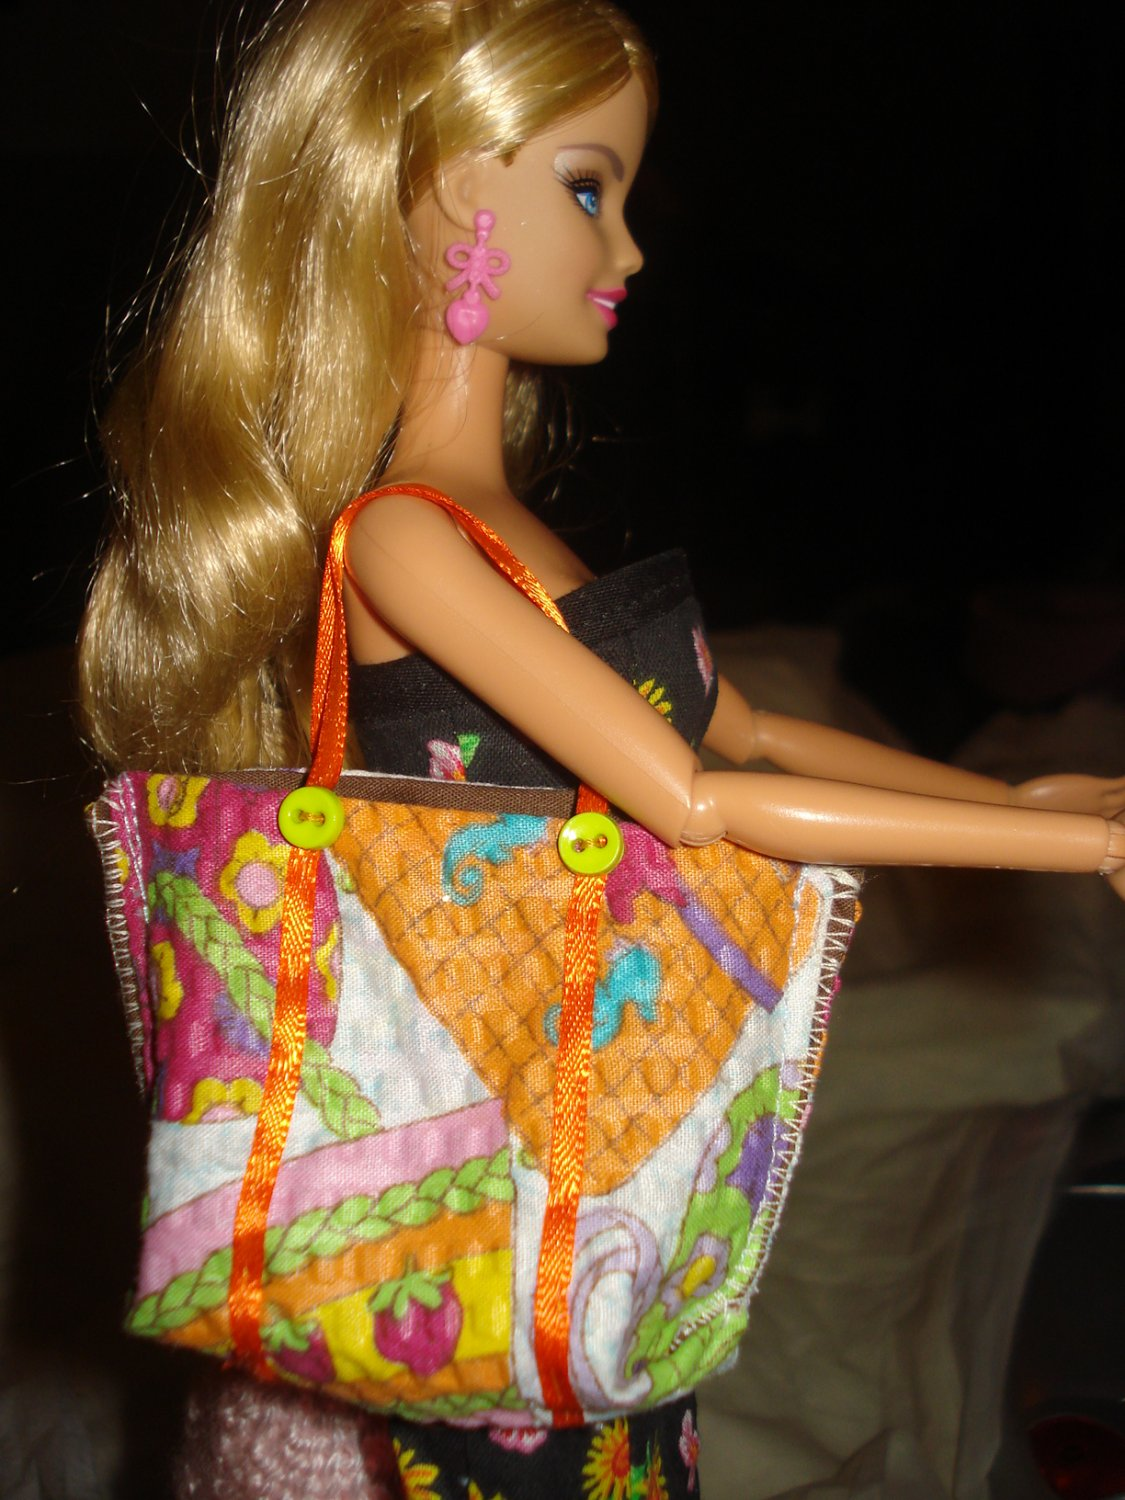 Tote bag / purse in a purse print material for Barbie Dolls - ed123